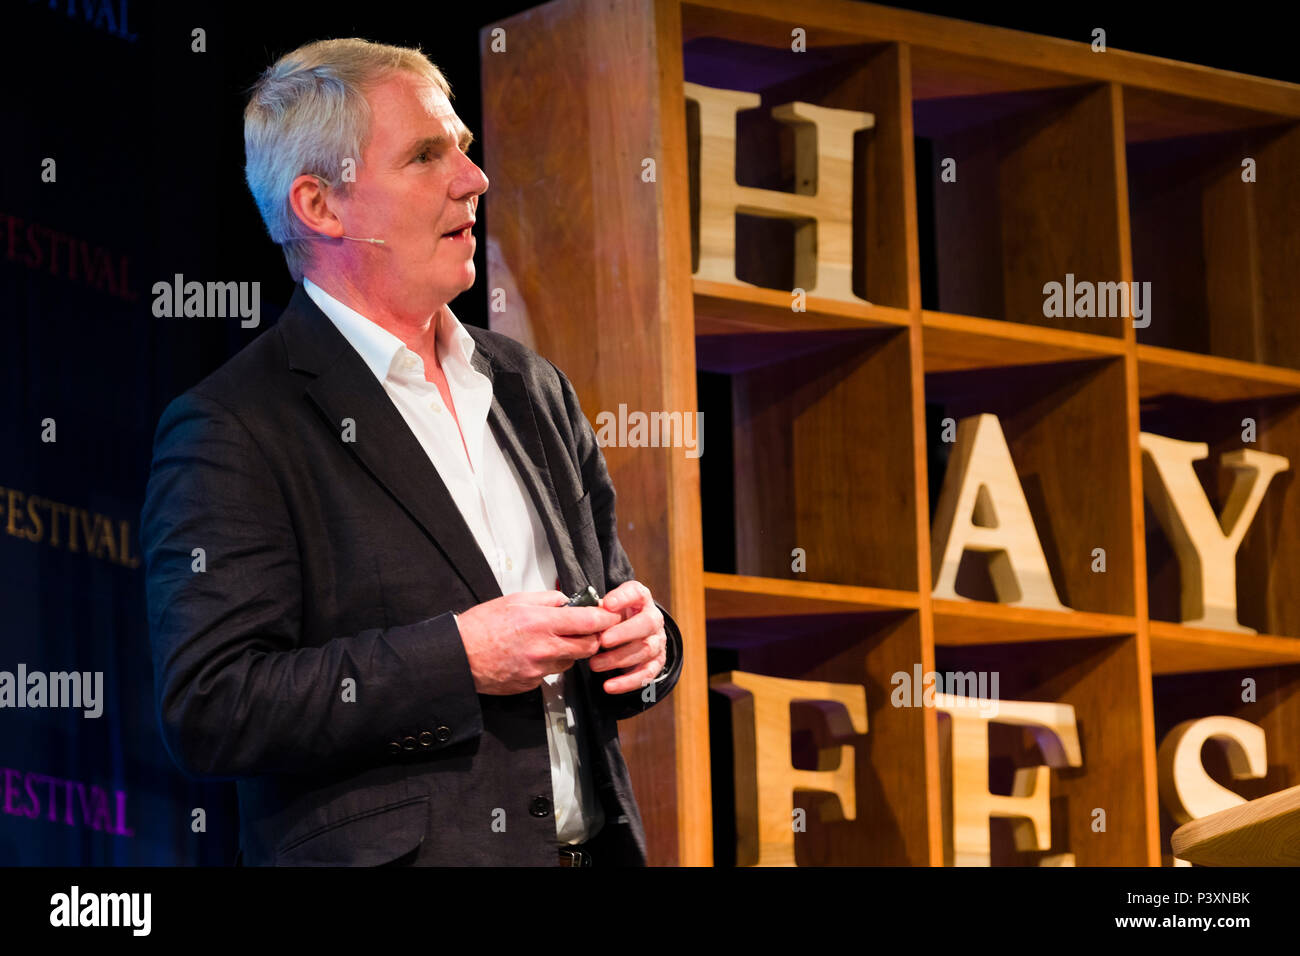 Sir Nigel Richard Shadbolt FRS FREng CITP CEng FBCS CPsychol Principal of Jesus College, Oxford, and Professorial Research Fellow in the Department of Computer Science, University of Oxford.  Author of 'The Digital Ape' . Pictured speaking at the 2018 Hay Festival of Literature and the Arts.  The annual festival  in the small town of Hay on Wye on the Welsh borders , attracts  writers and thinkers from across the globe for 10 days of celebrations of the best of the written word, political though  and literary debate - Stock Image